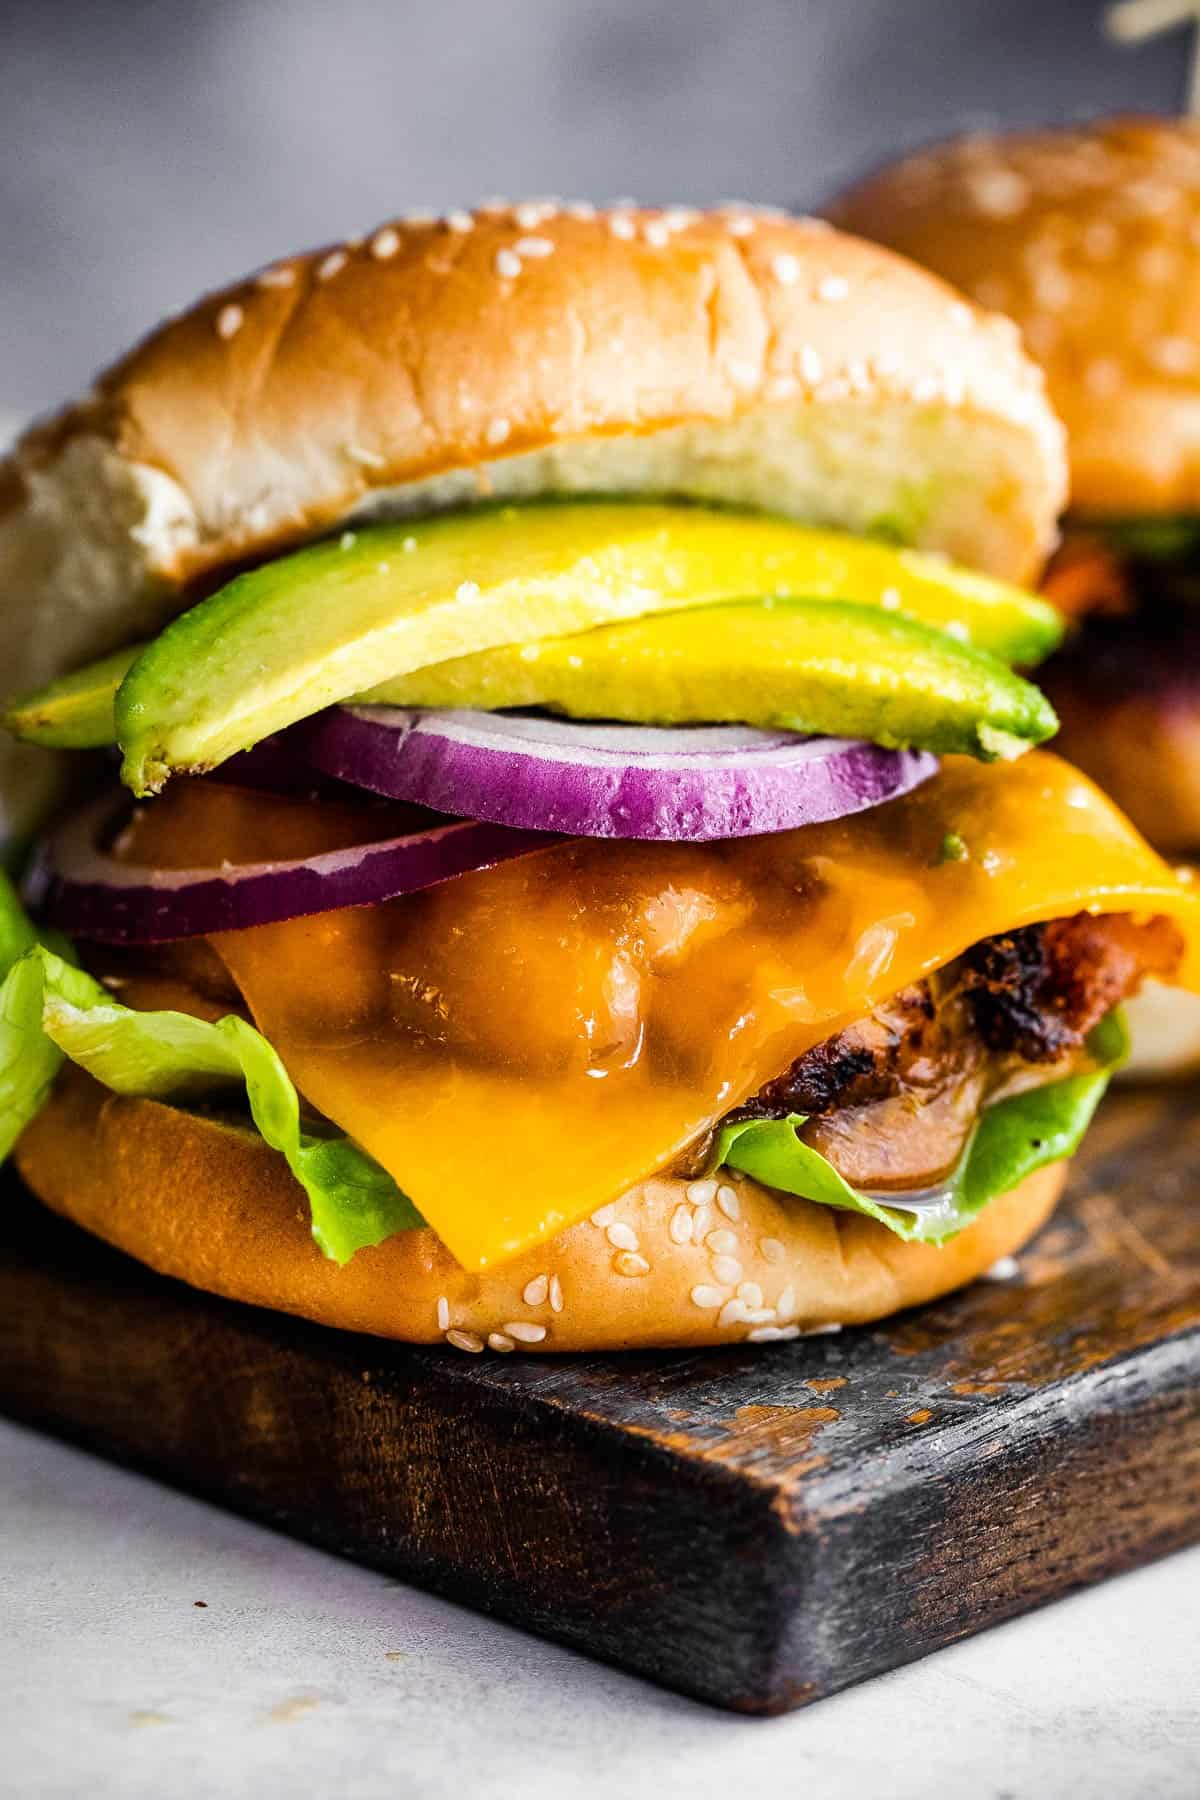 turkey burger with cheese, avocado, and a slice of red onion, set in between sesame seed buns